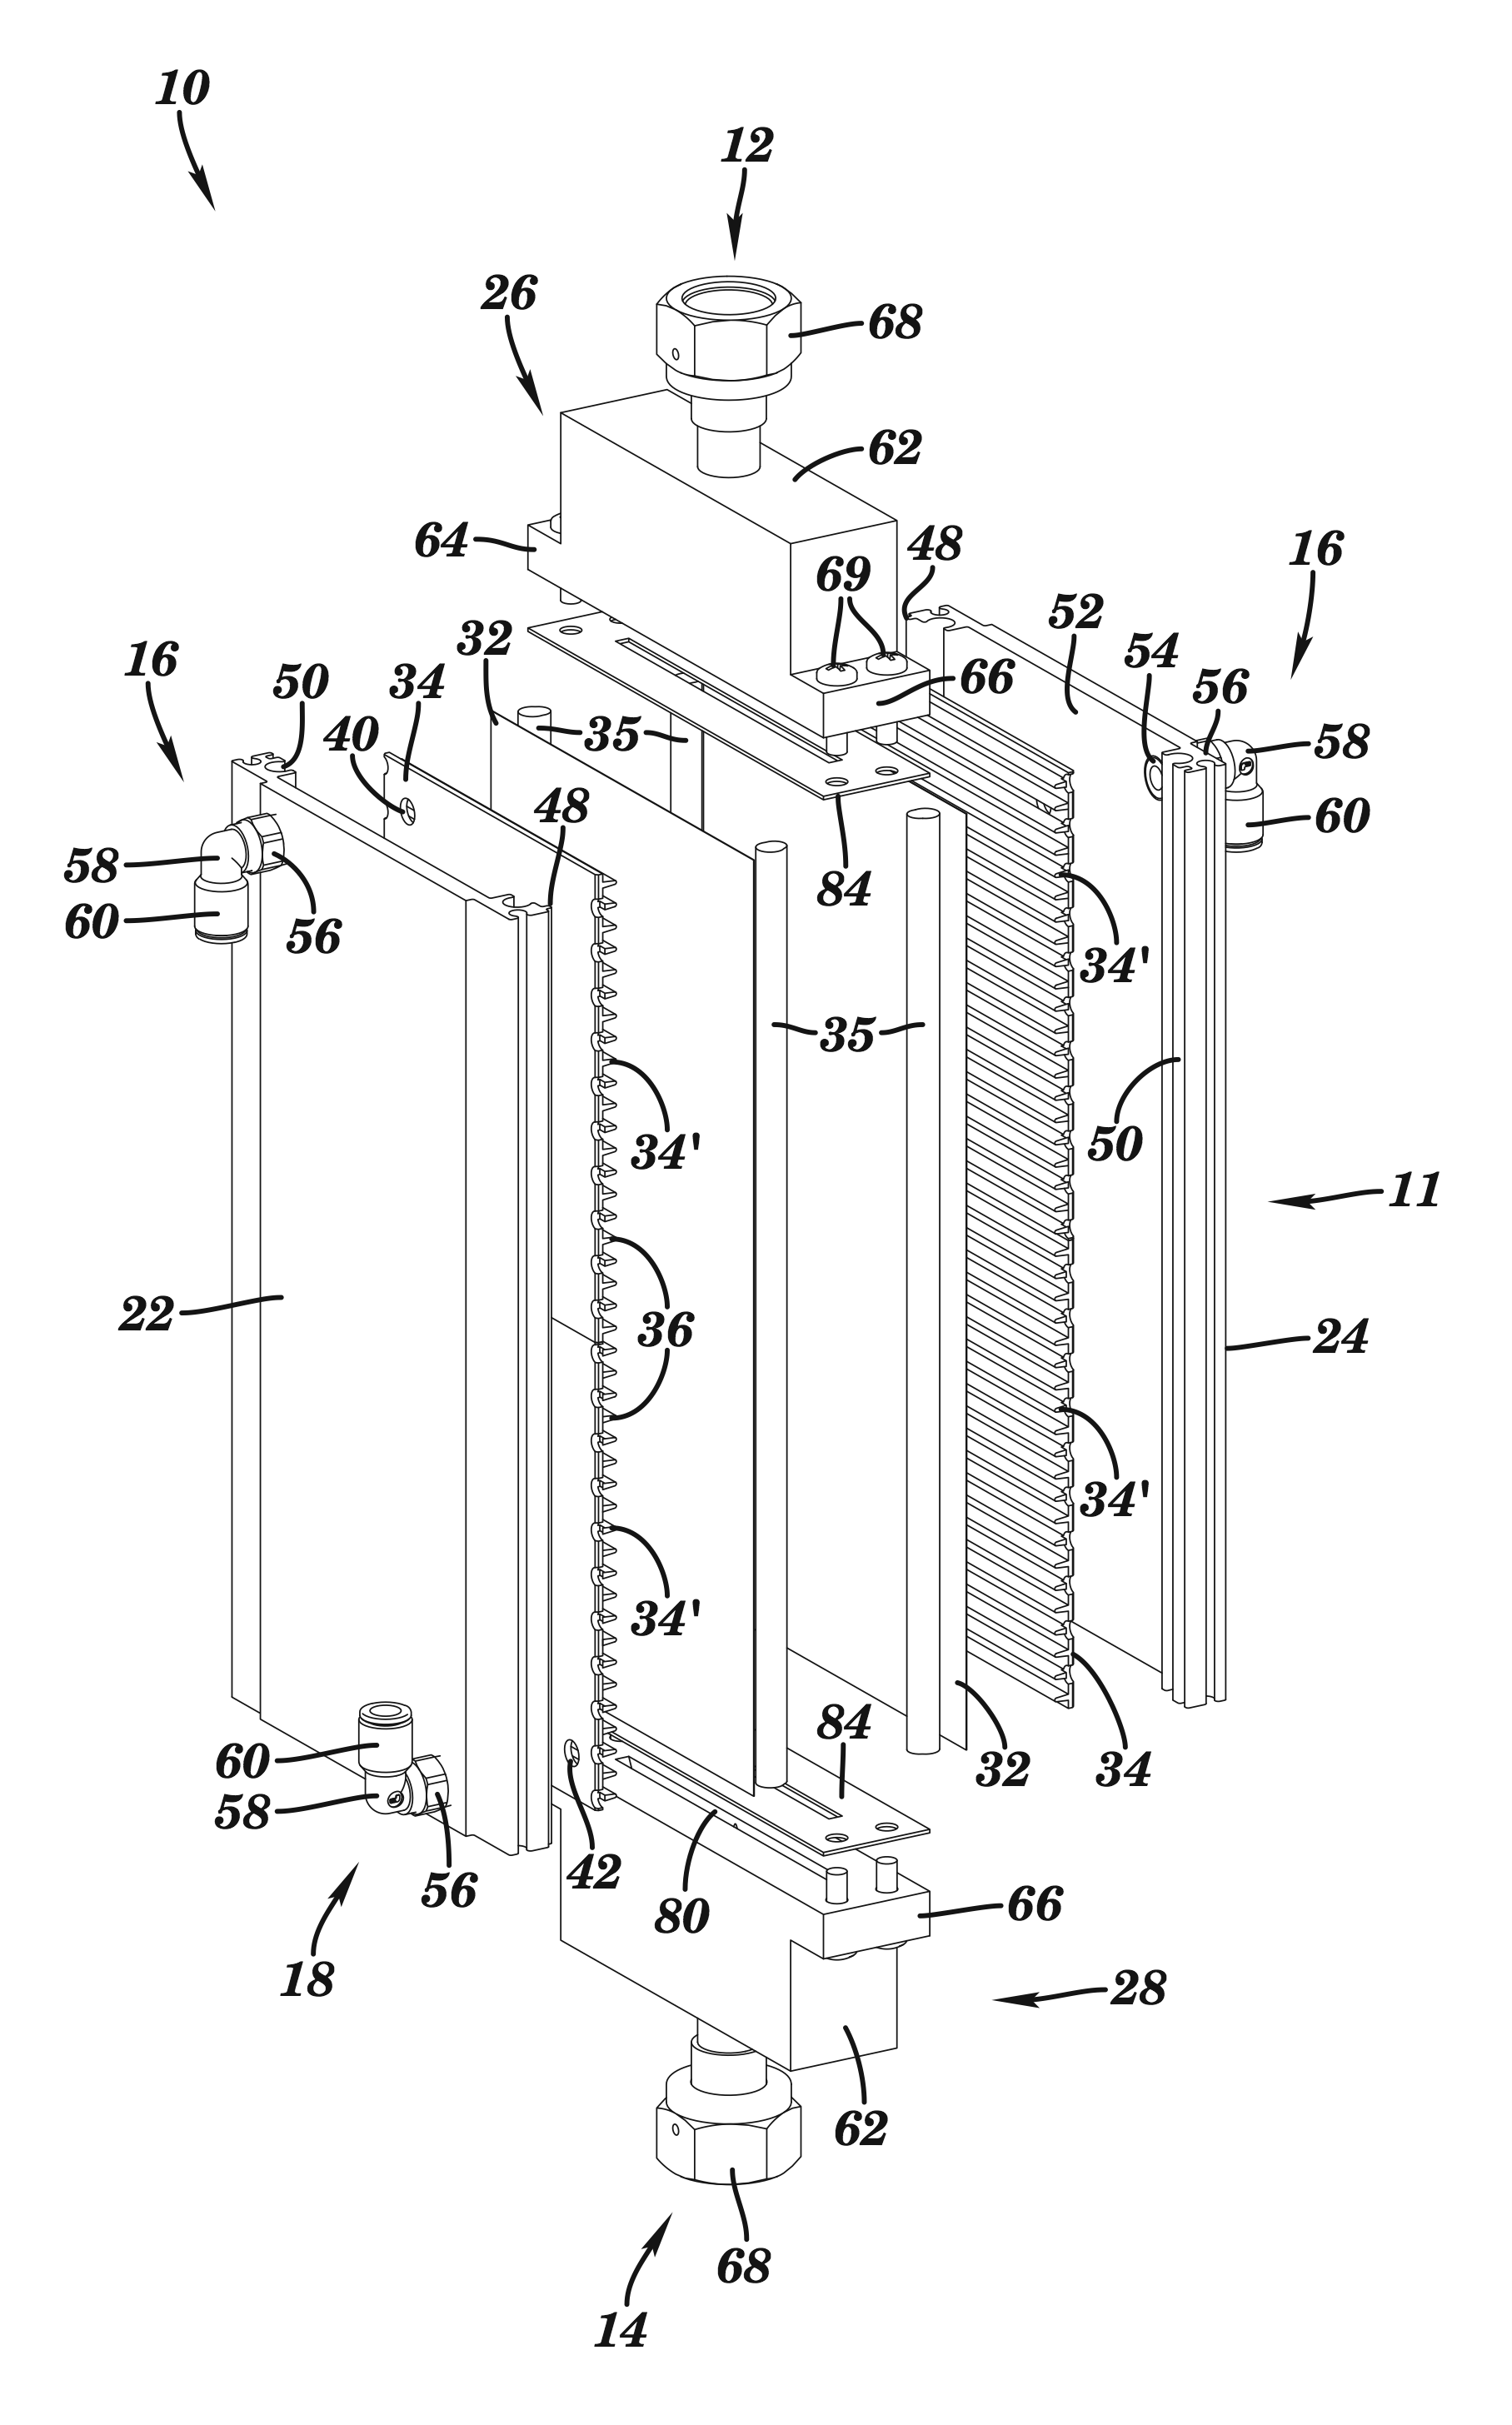 42_ptiserviceco_patent_drawing_mechanical.png